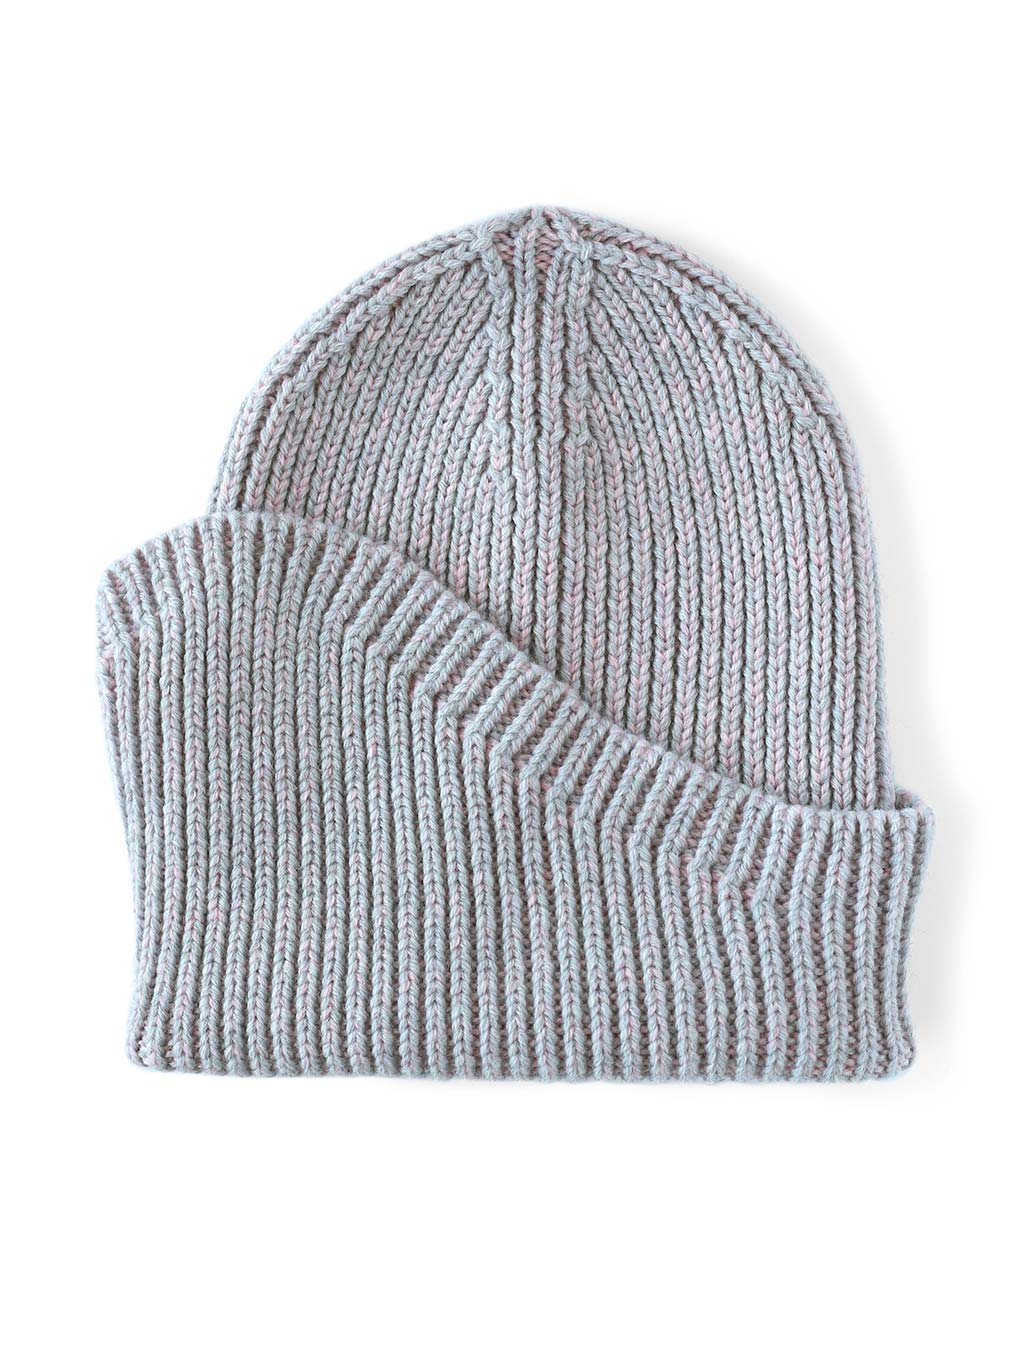 A classic beanie reshaped into a new asymmetrical form, knitted with two colours in premium merino wool. Light grey and pink colour.